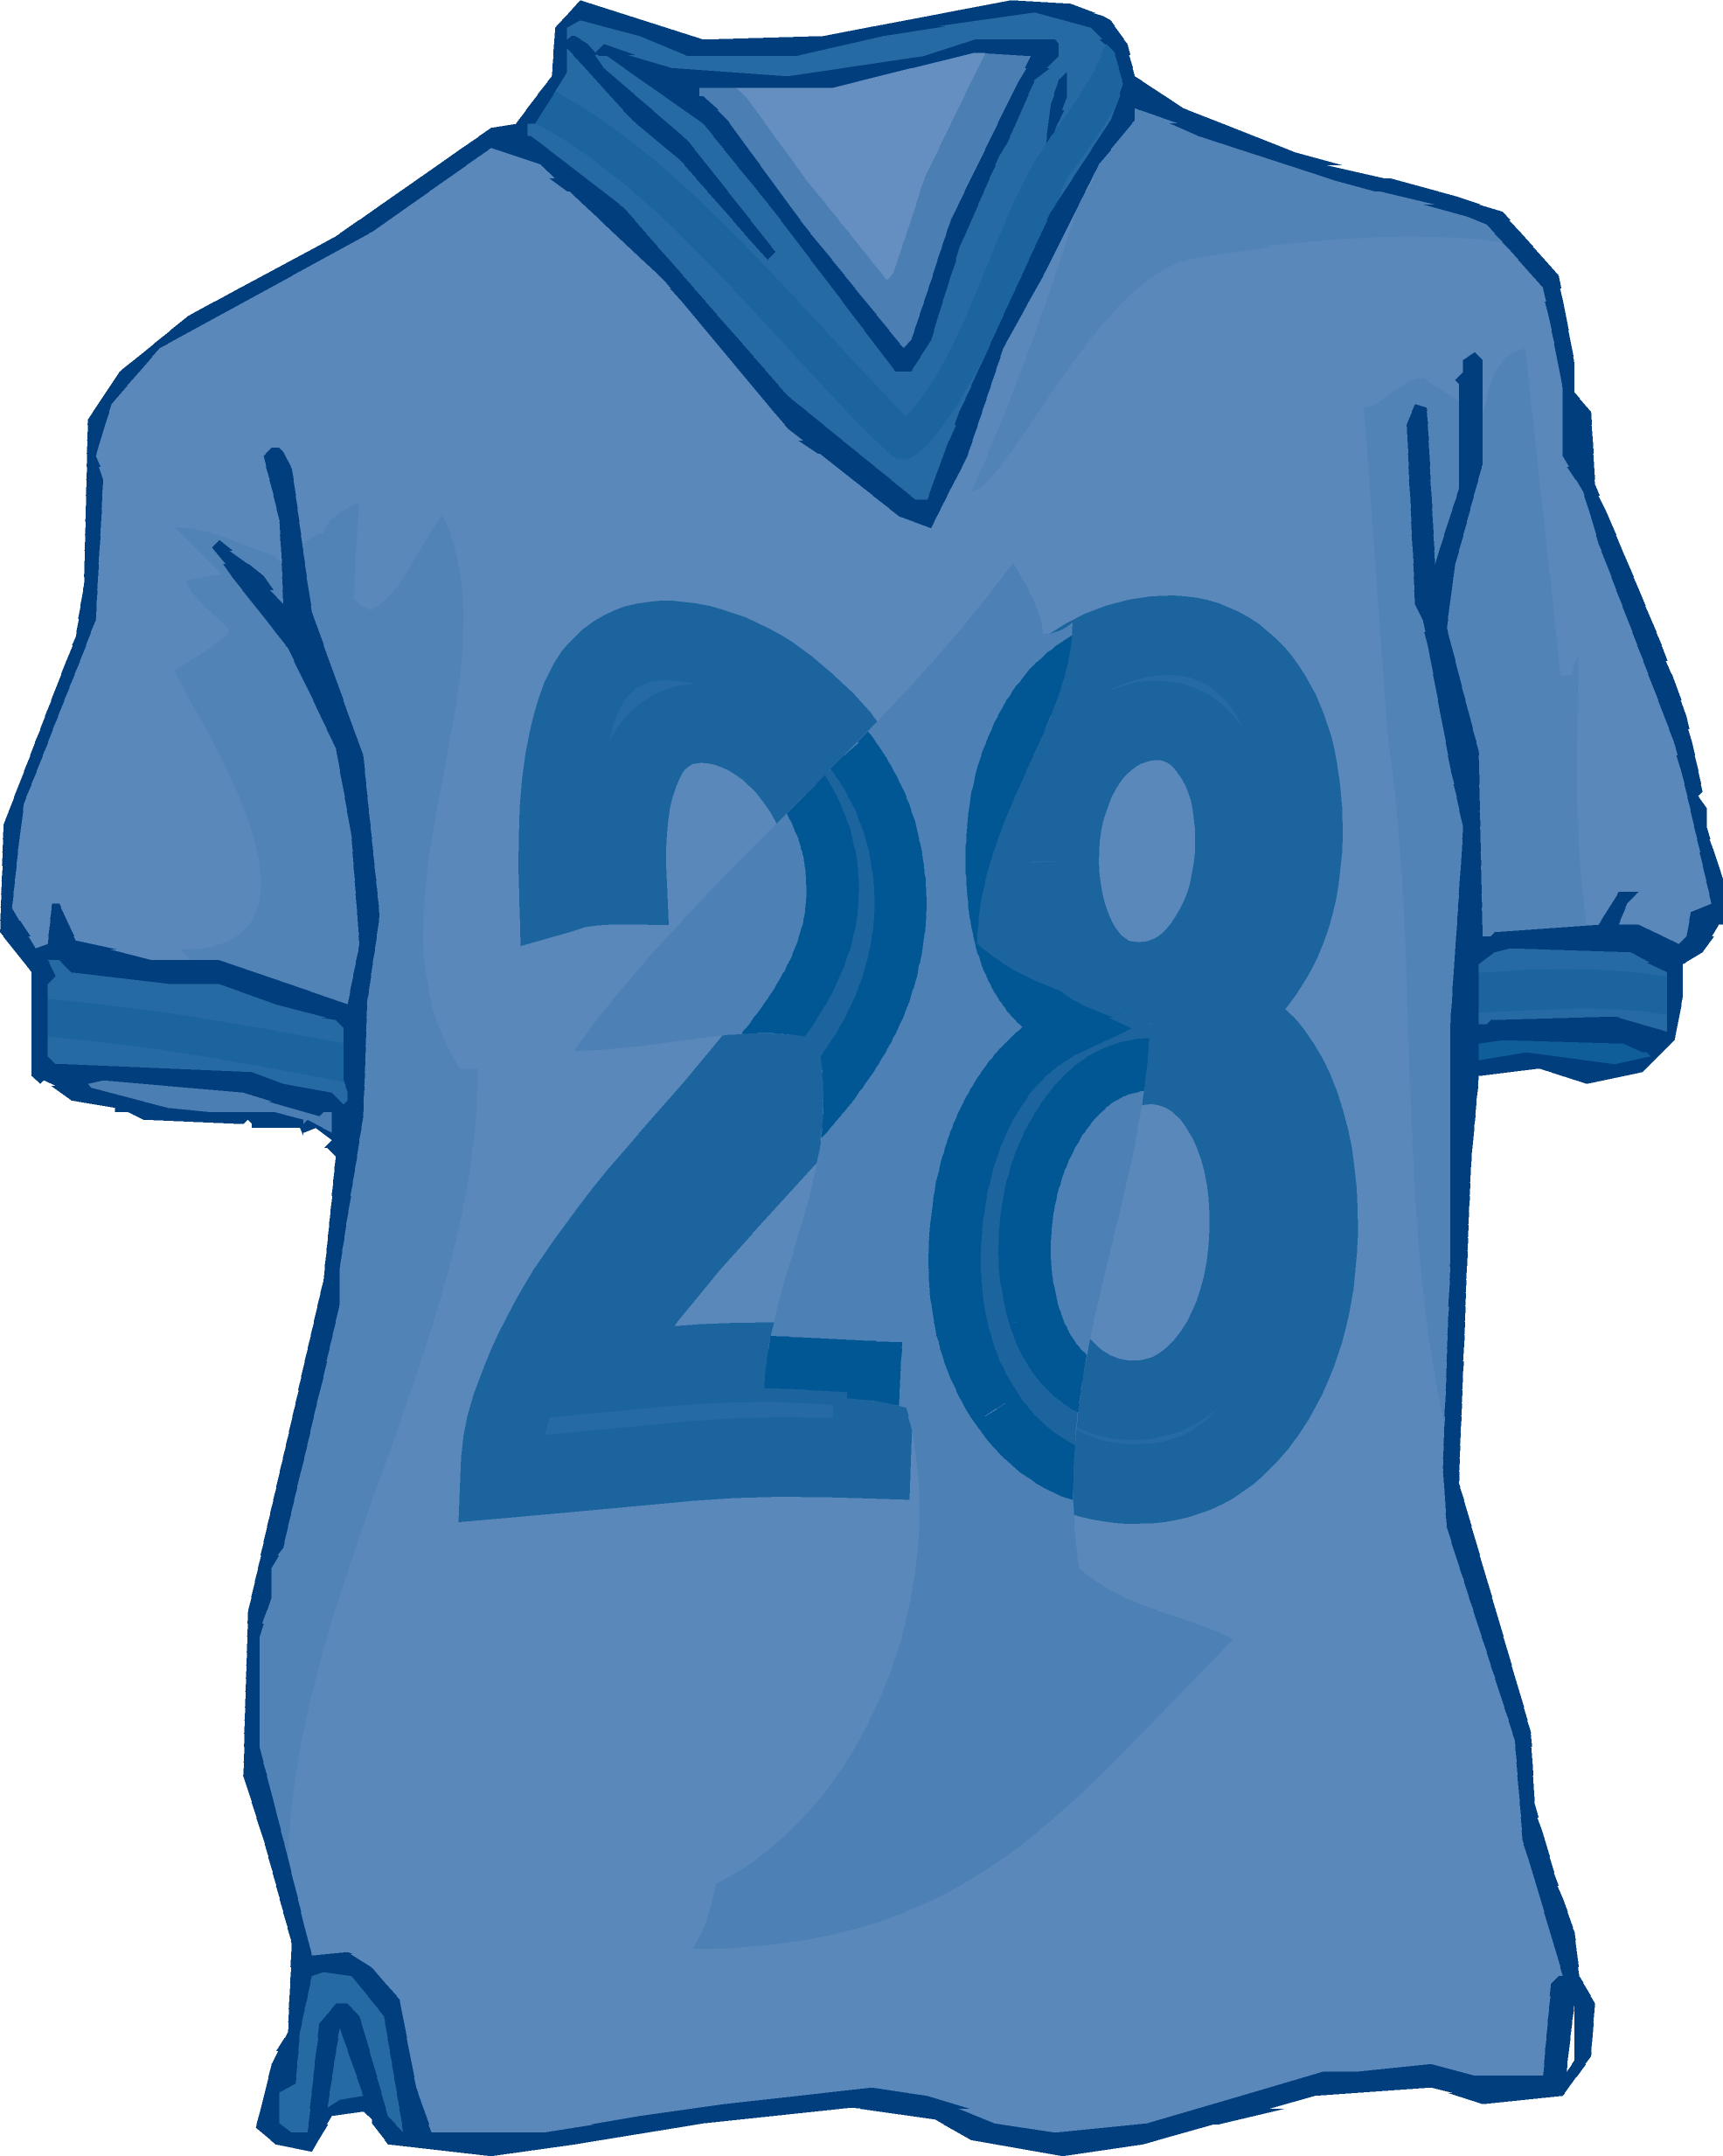 picture black and white library Jersey clipart. Free sports cliparts download